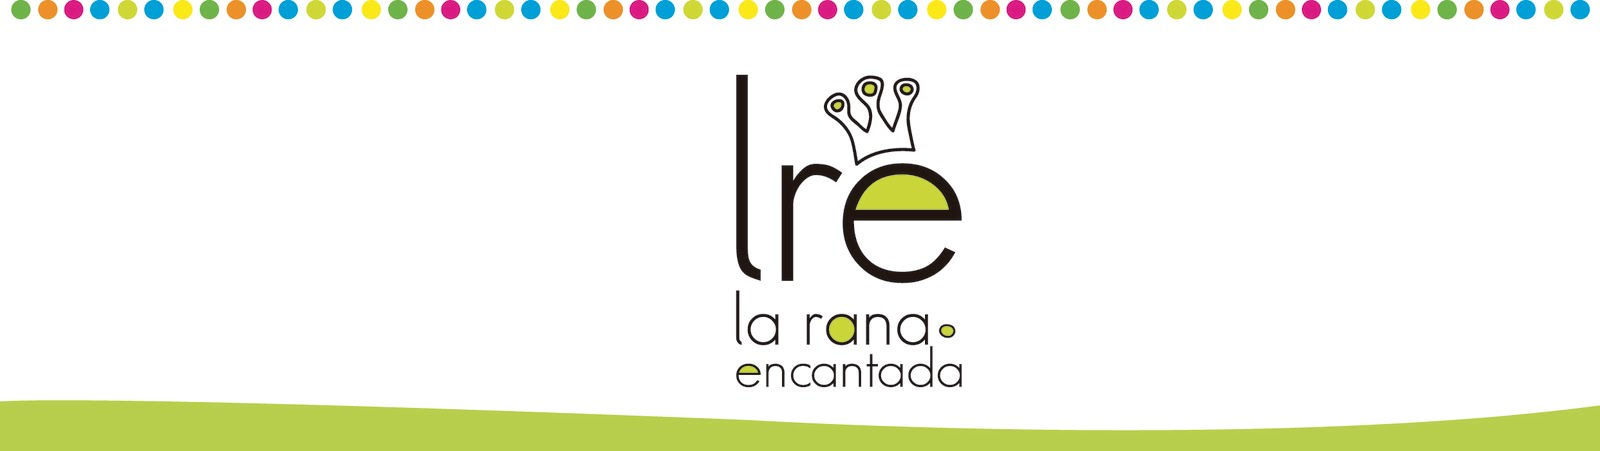 La rana encantada